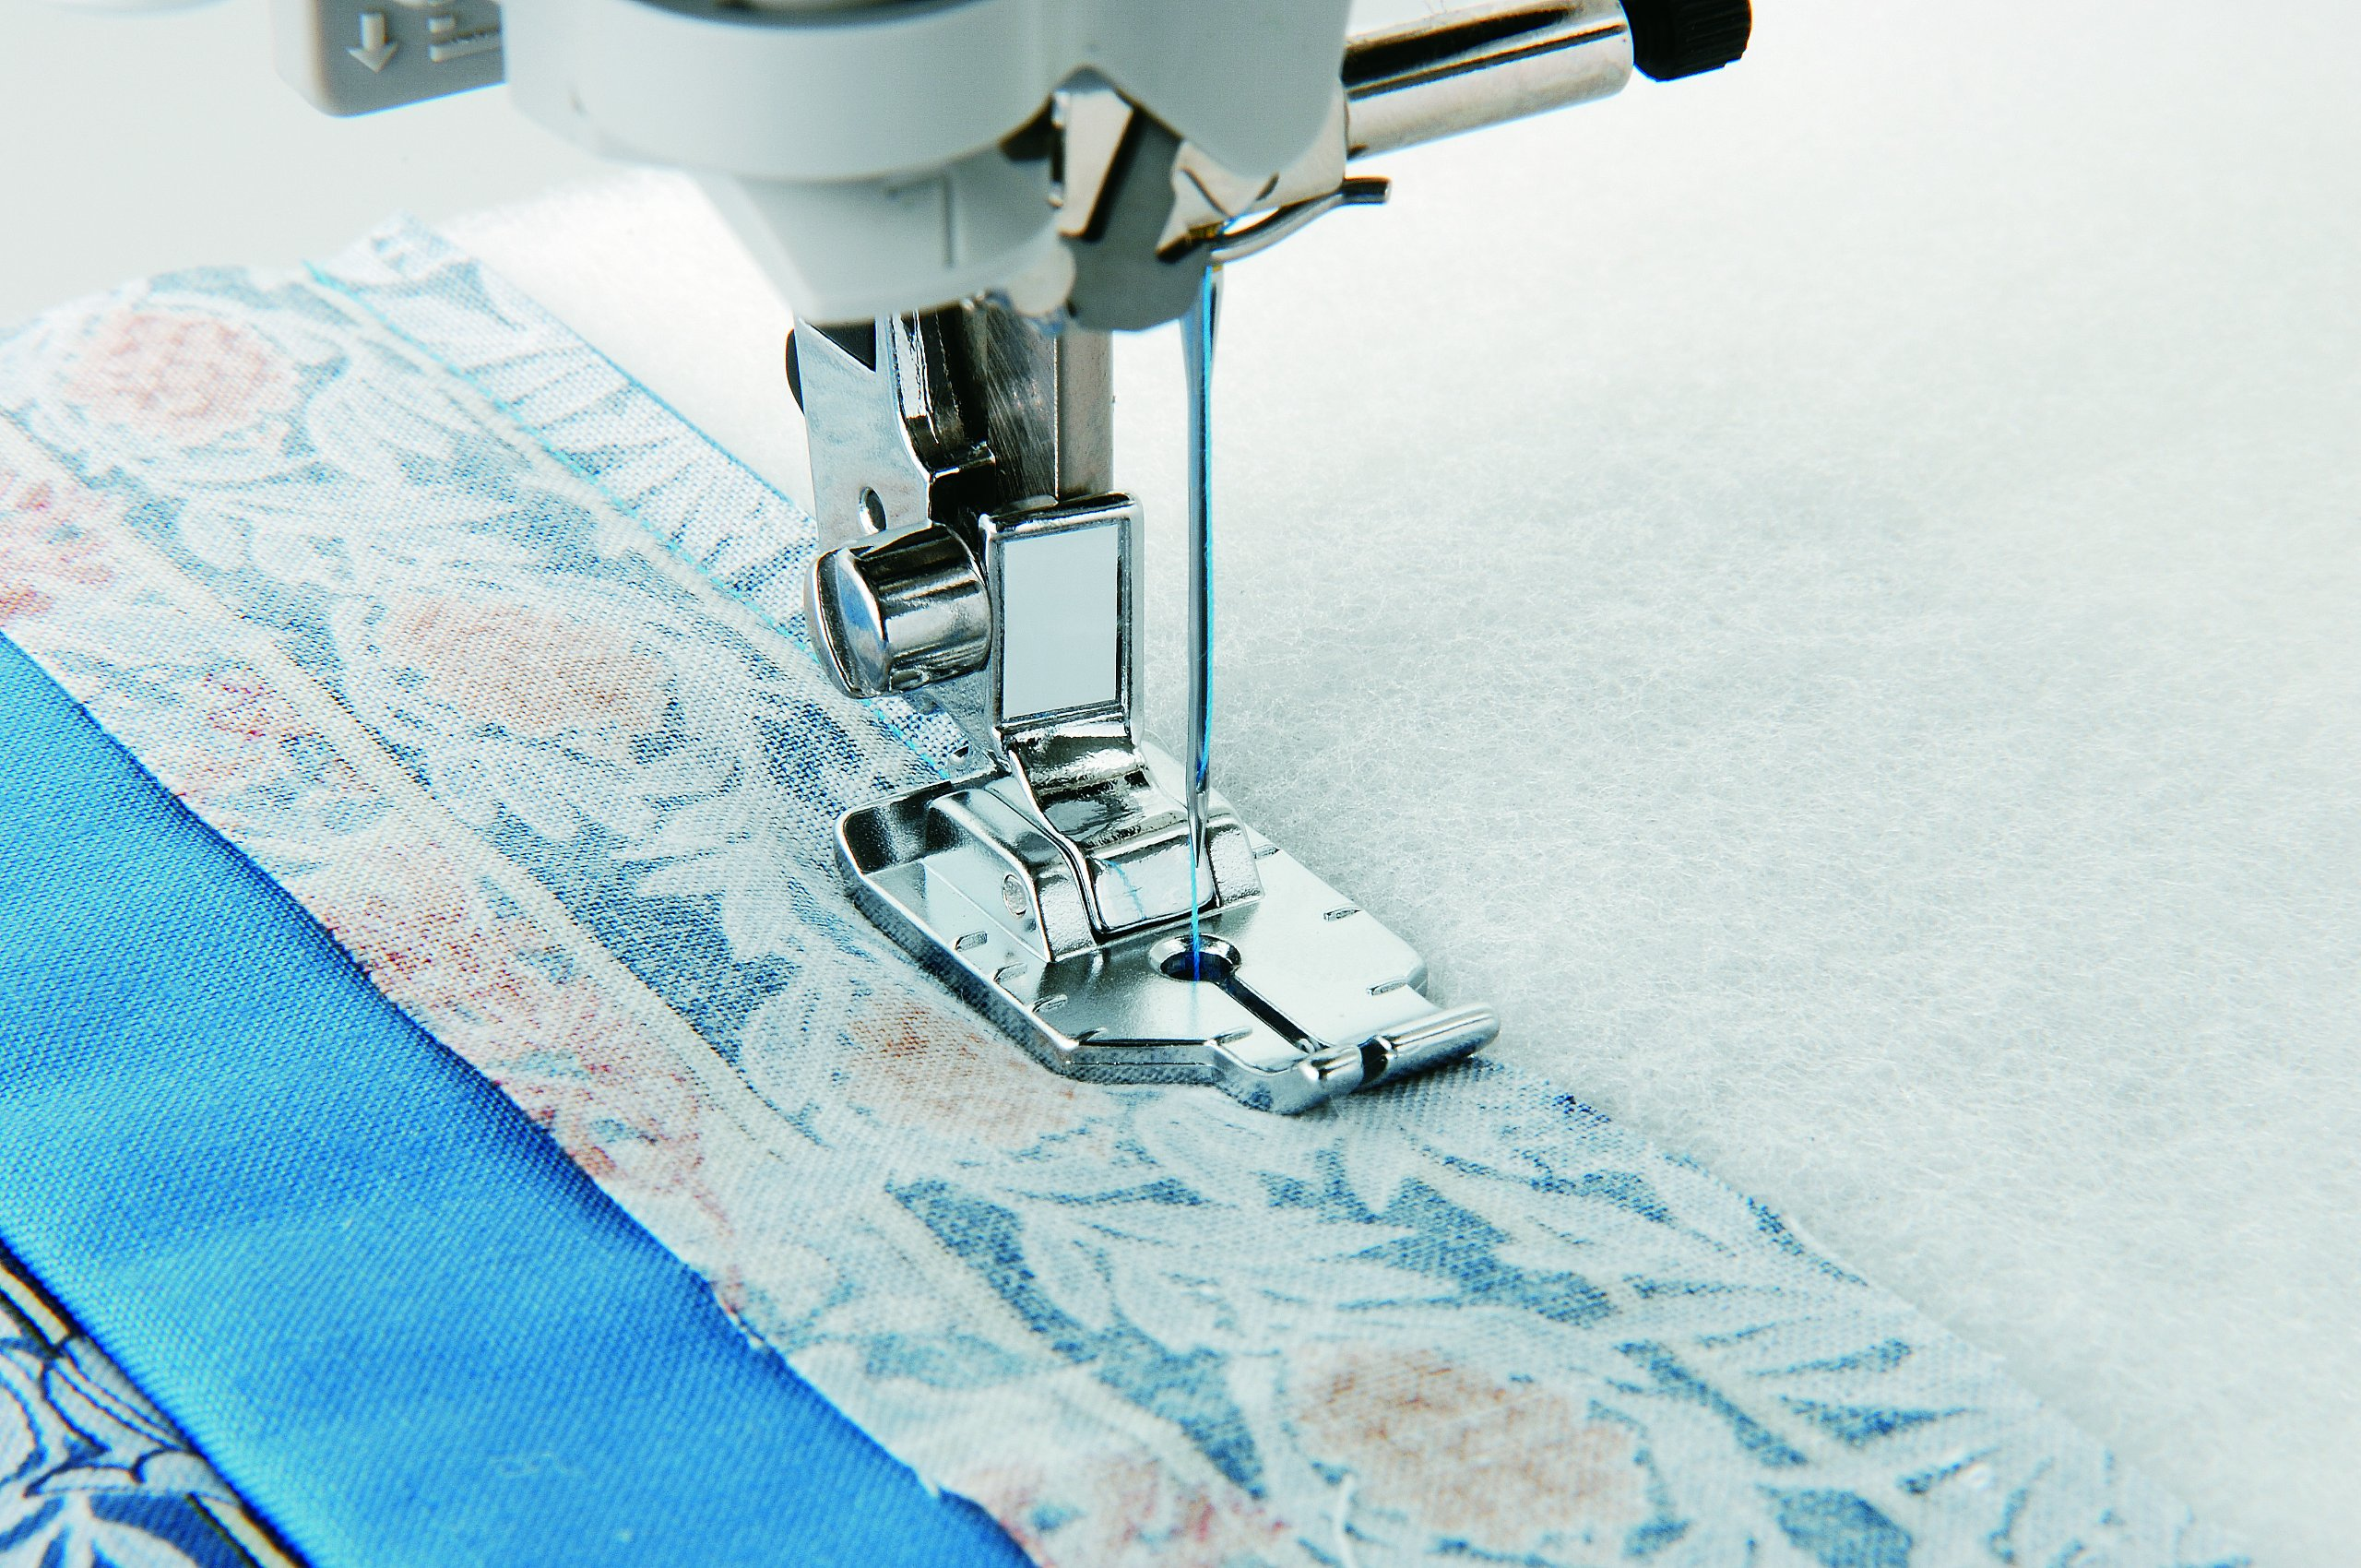 Brother ¼ Inch Piecing Foot for Quilting and Topstitching, SA125, Silver product image